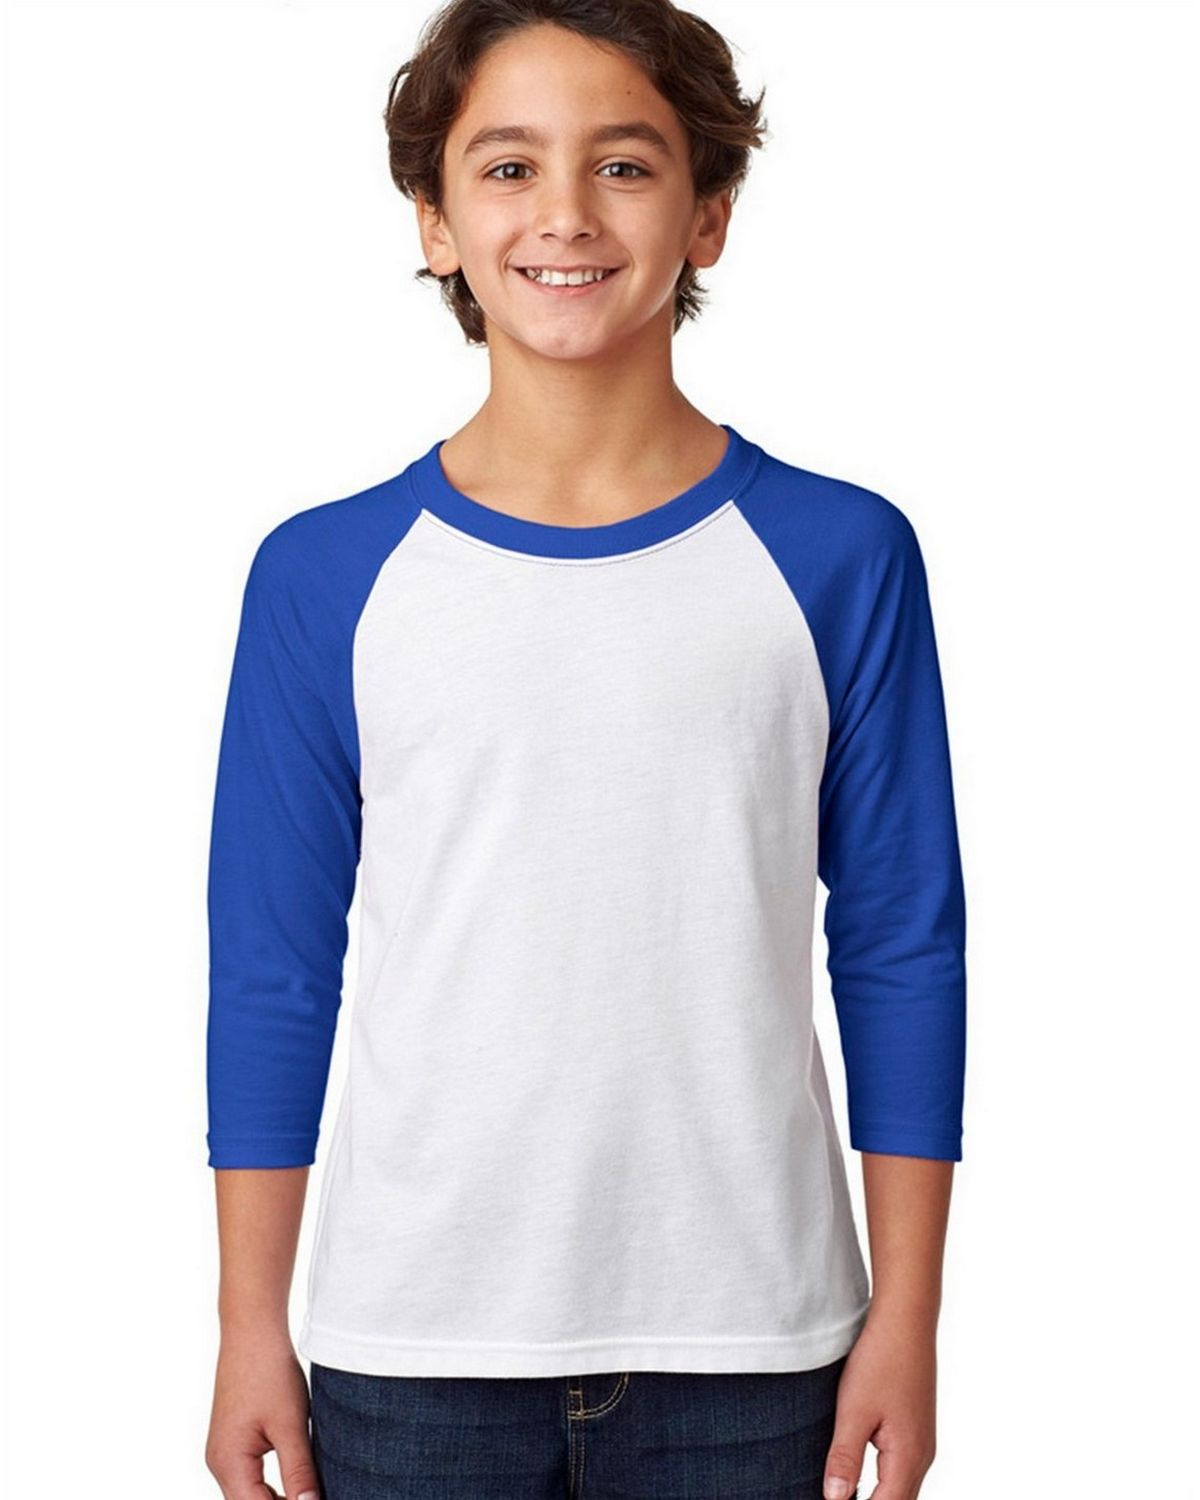 Next Level 3352 CVC 3/4 Sleeve Raglan Tee - Royal/White - XL 3352